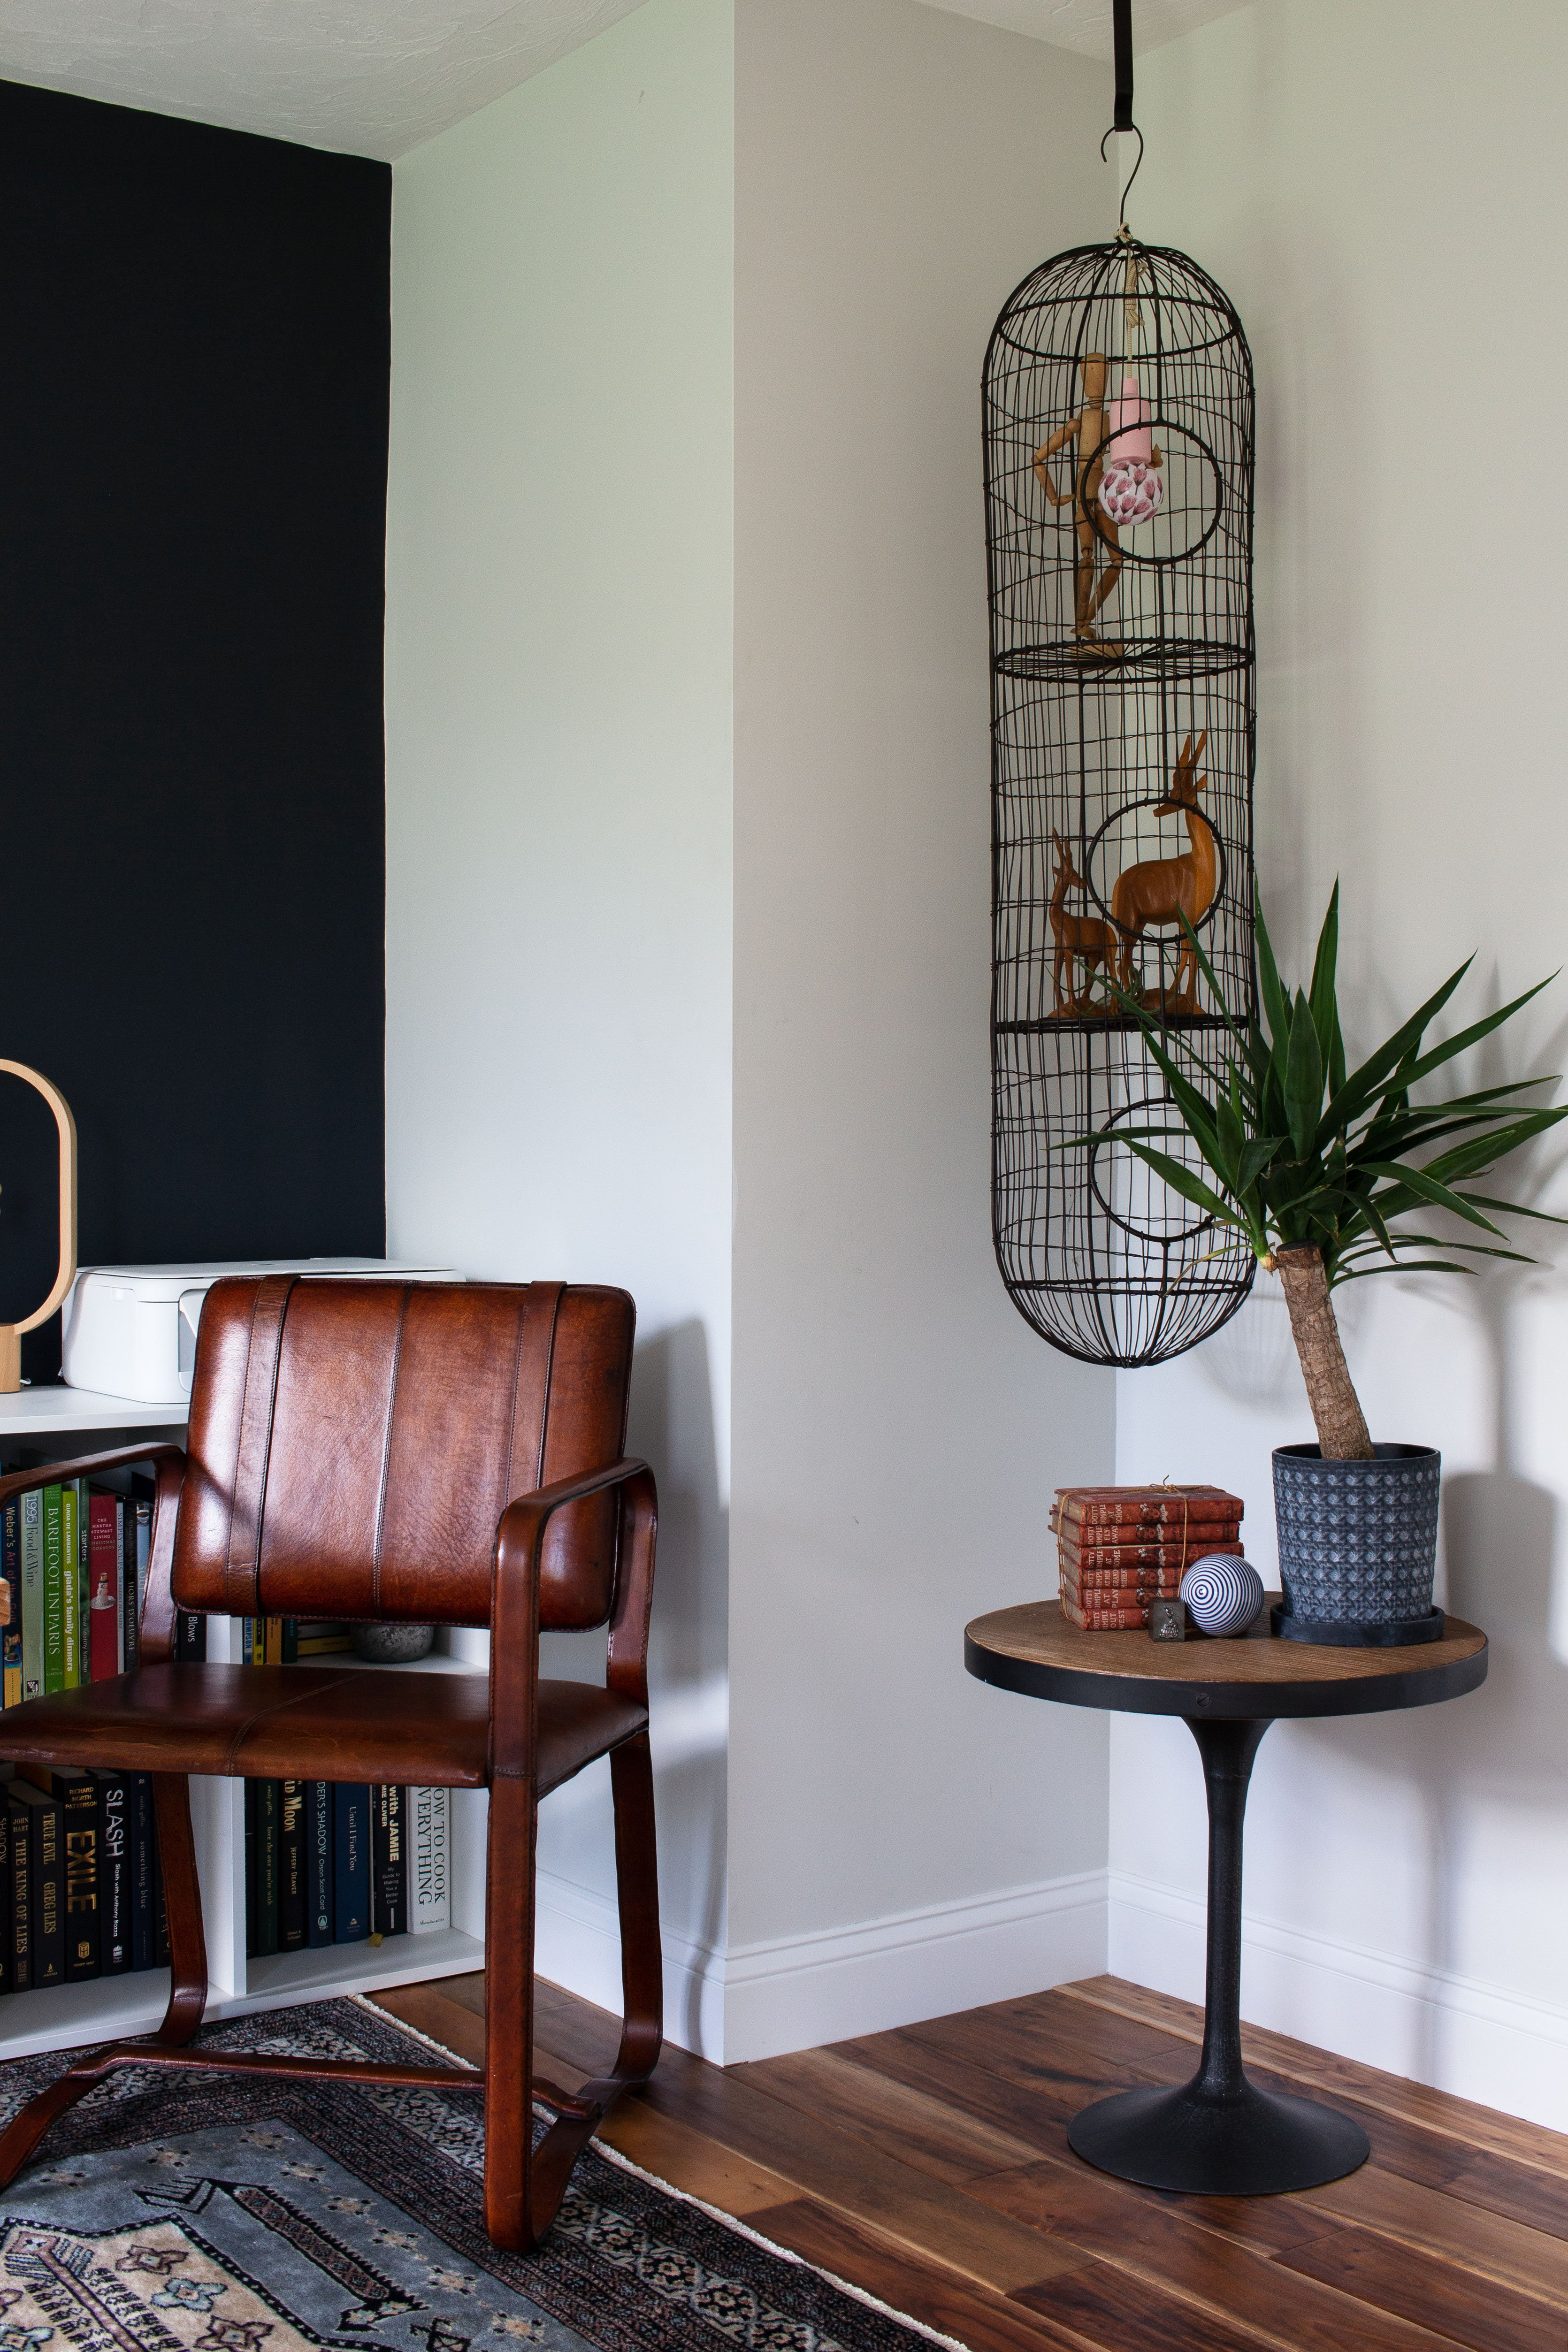 Graphic Home Office: One Room Challenge. A super cool thrifted cage fills the awkward vertical space by the desk.